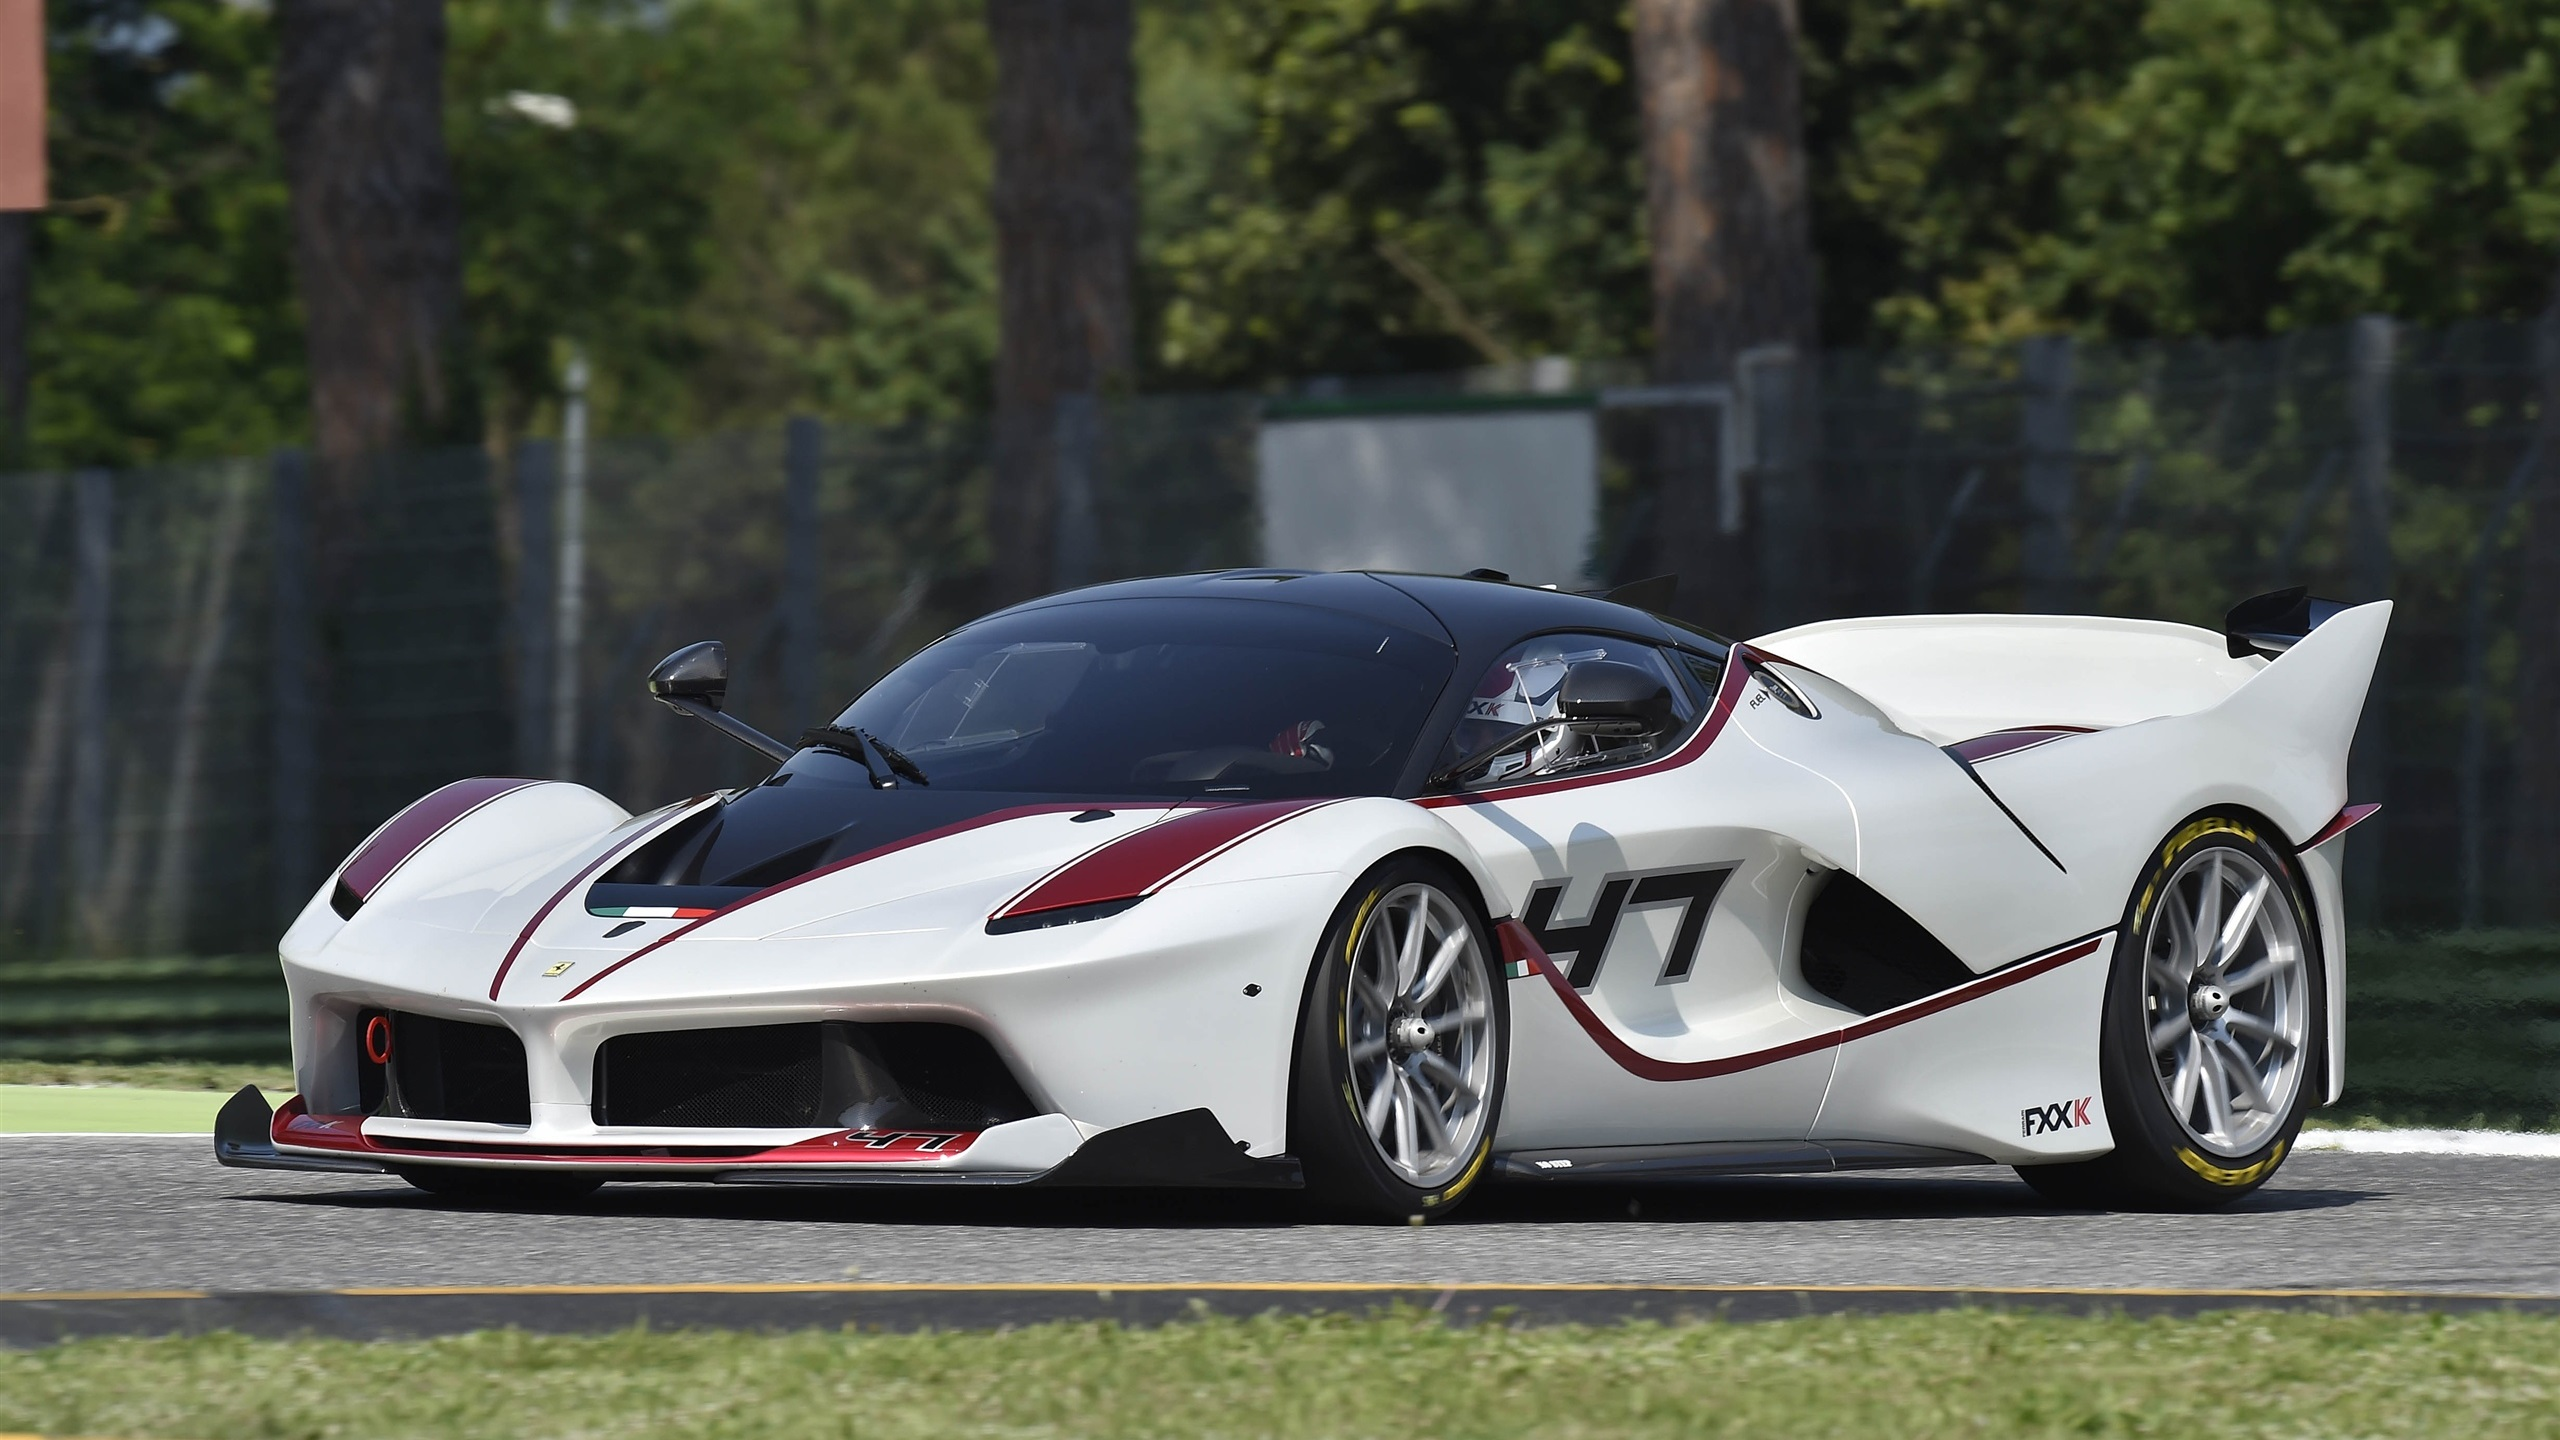 Wallpaper 2015 Ferrari Fxx K White Supercar 2560x1600 Hd Picture Image